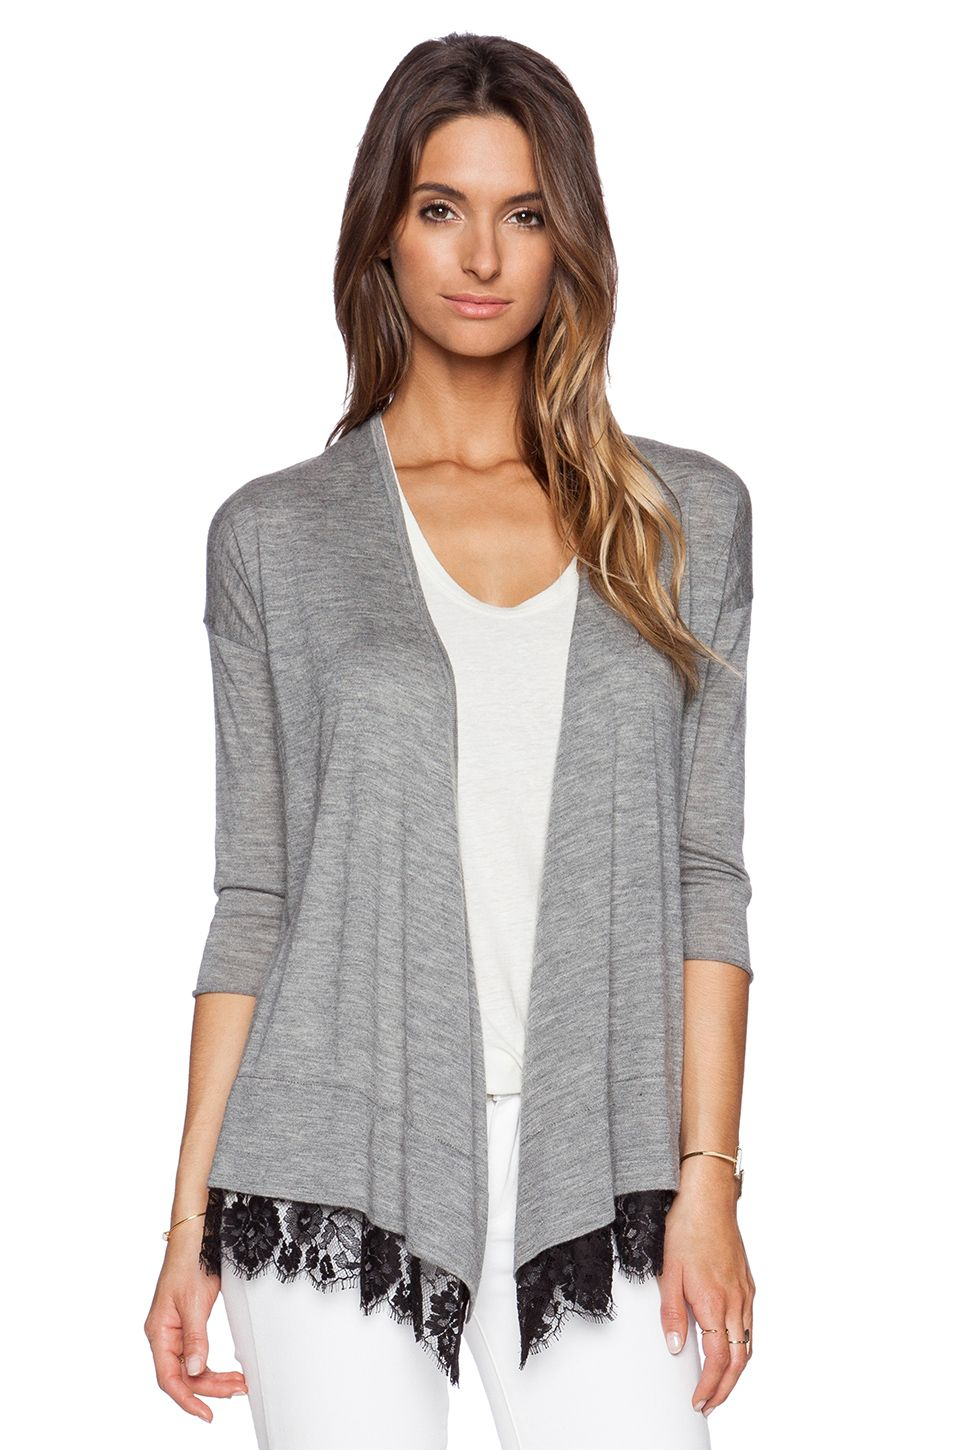 Autumn Cashmere Lace Trim Cardigan in Rock & Black | Tops ...